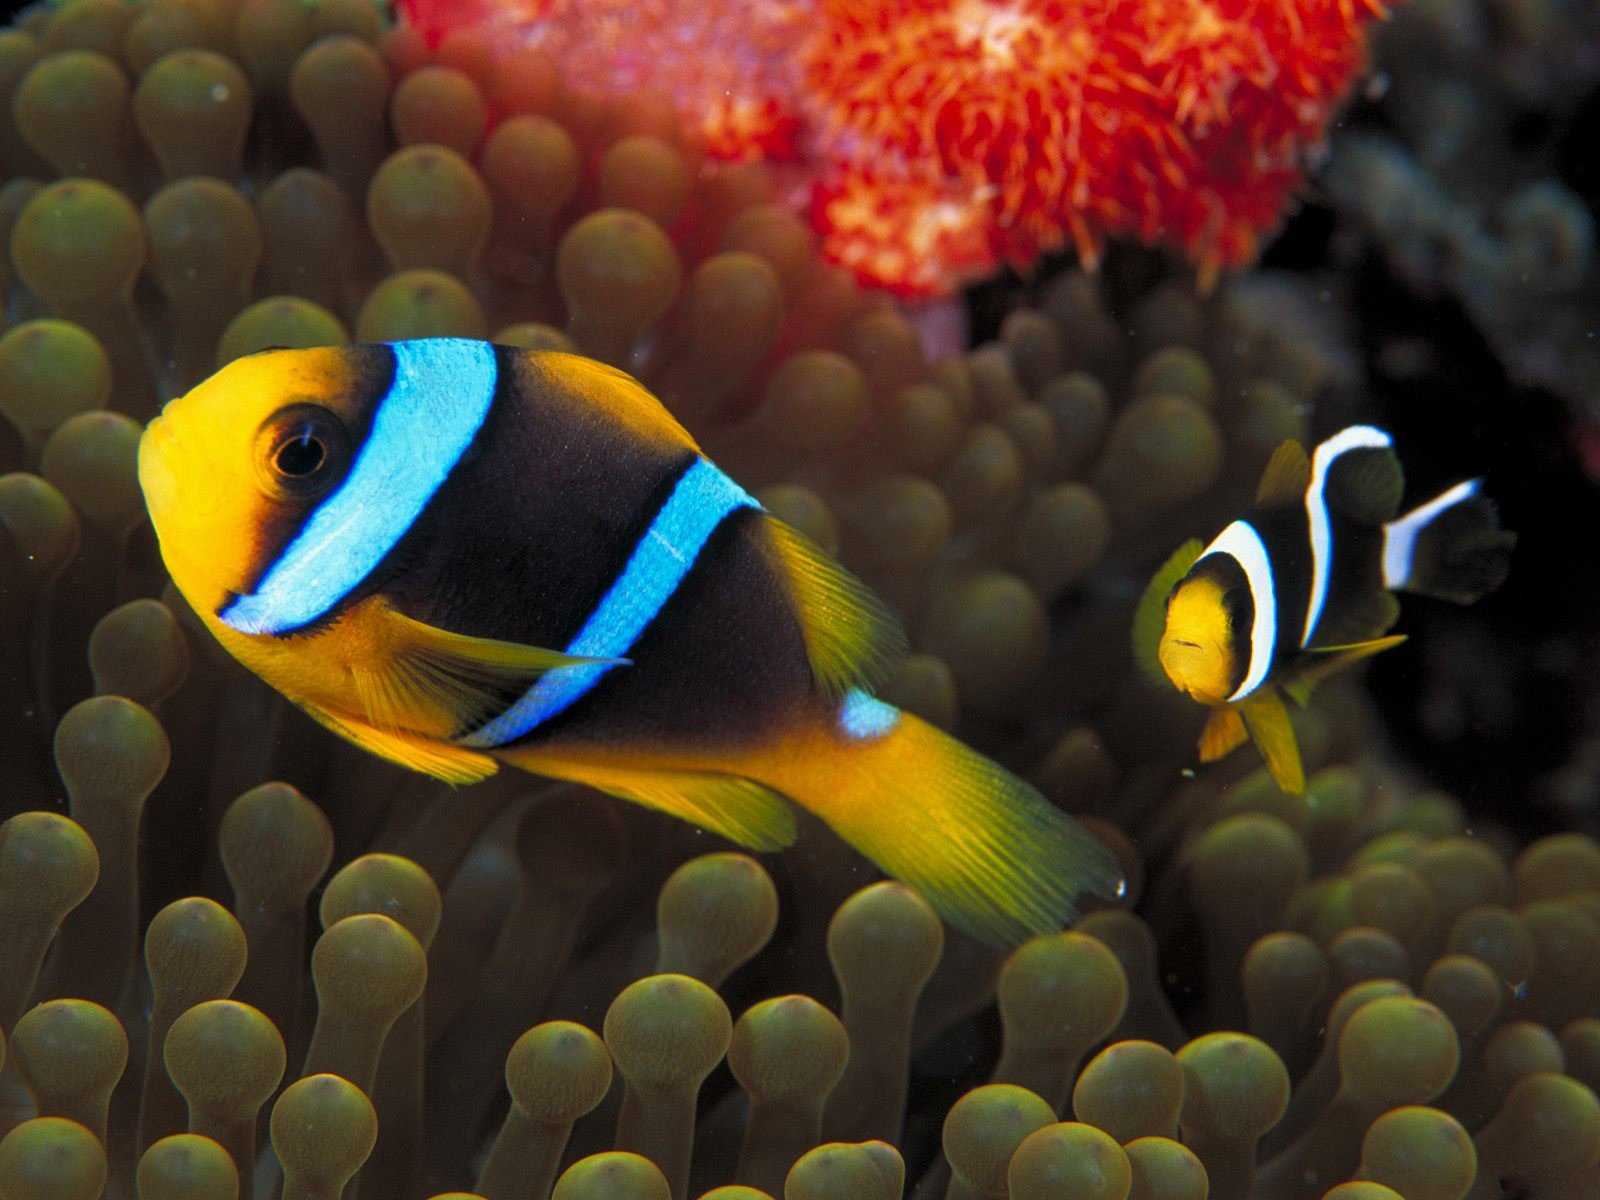 http://2.bp.blogspot.com/-hOxdwqQlnfI/Tq5oqdLeFPI/AAAAAAAADOE/m88Ff5ybAWM/s1600/Beautiful_fish_wallpaper_Clown_Fish_Animals_Under_water_www.picturepool.blogspot.jpg